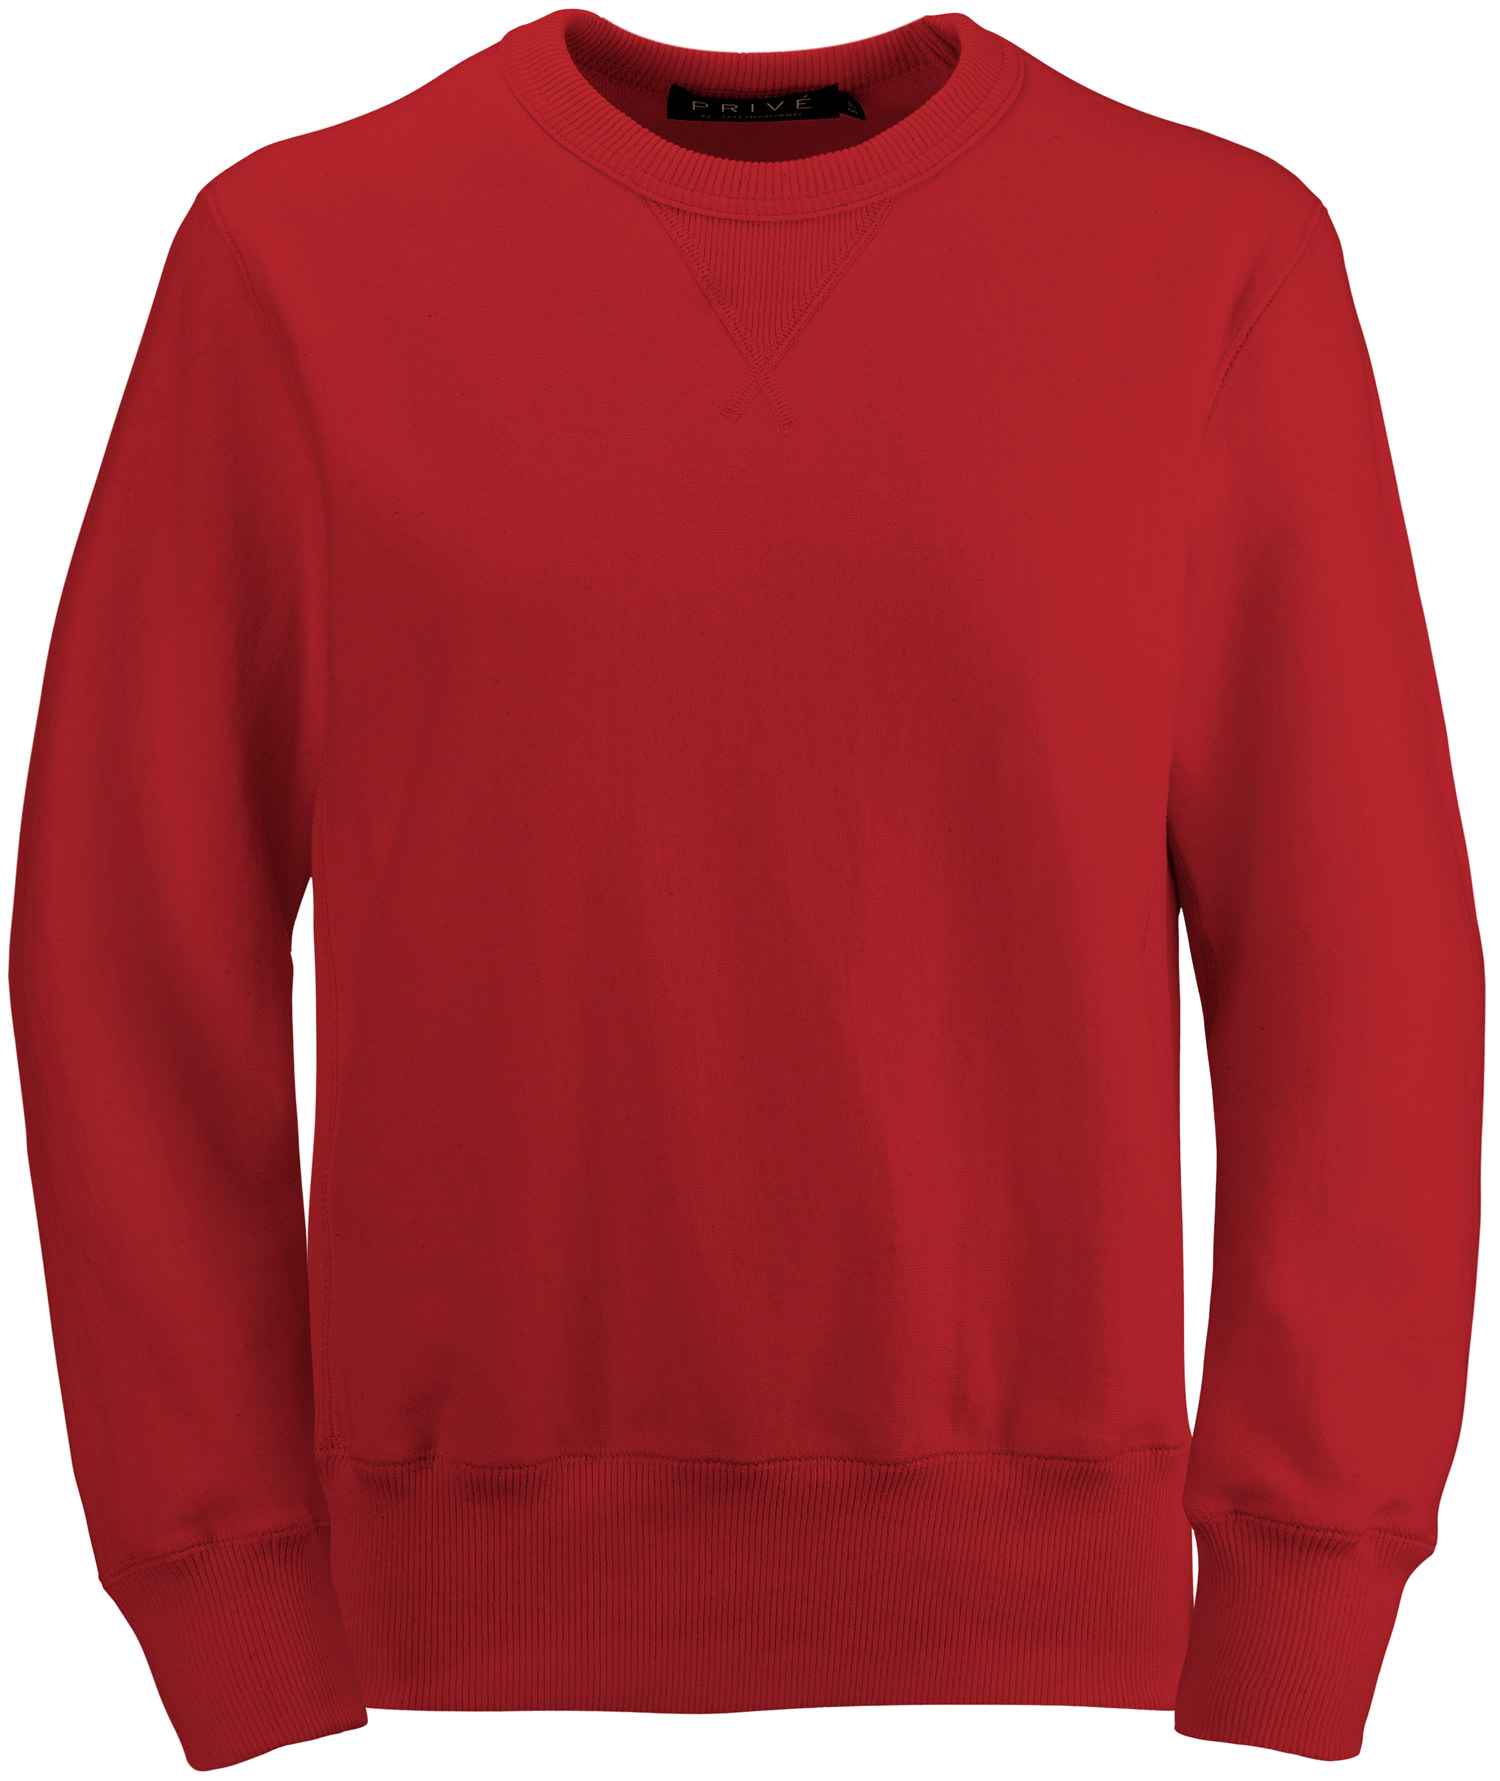 PRIVÉ Crewneck Ruby Red with Side Rib 100% Cotton